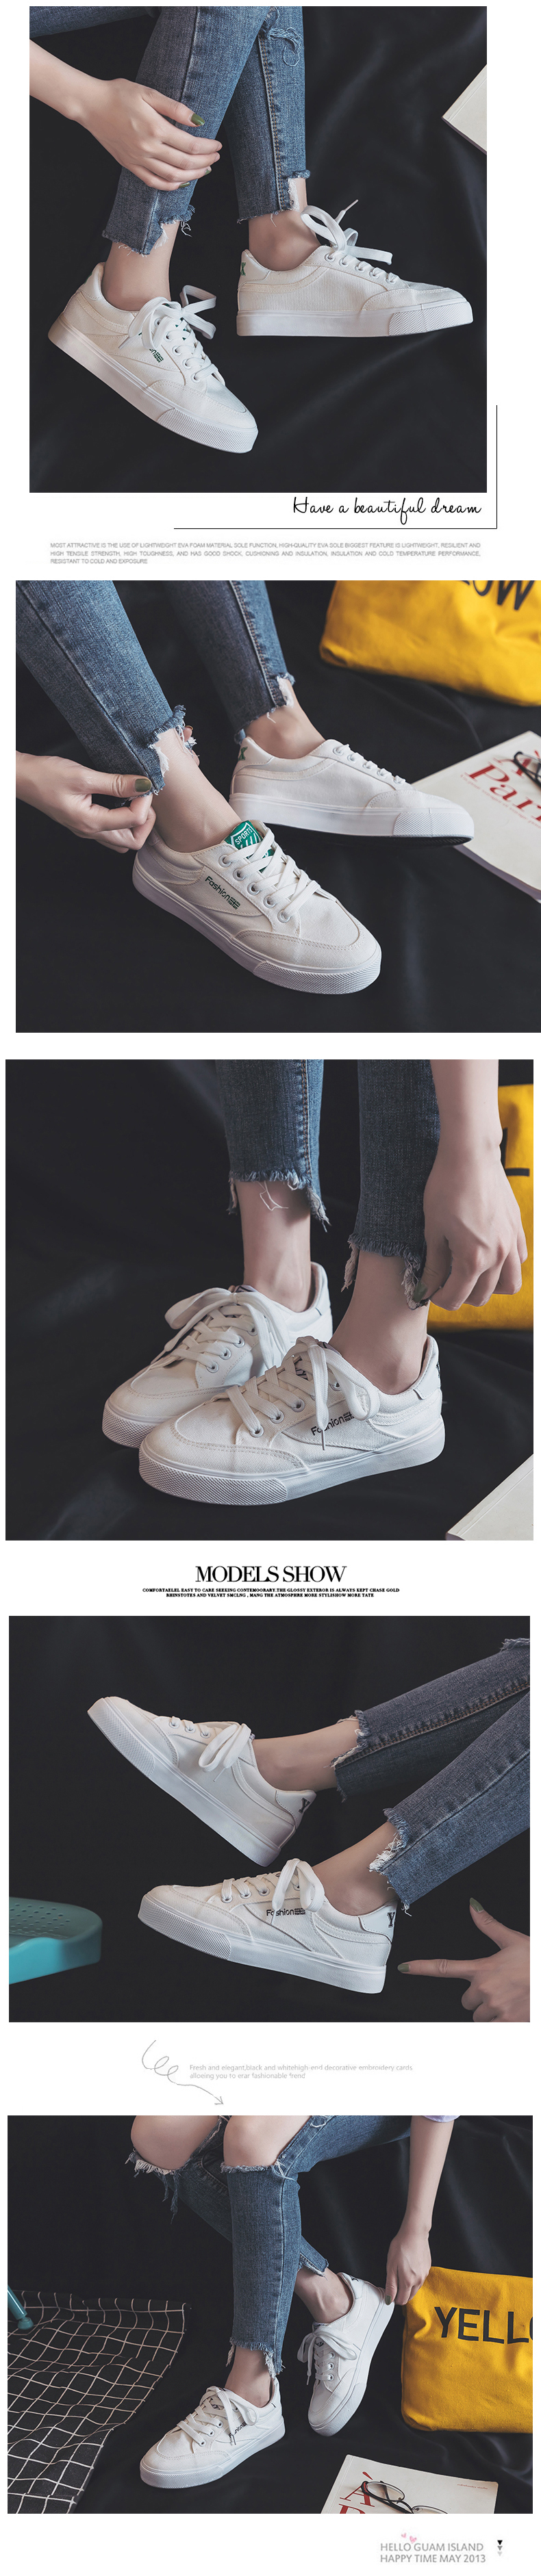 Fashion Style Women Canvas Vulcanized Shoes Simple Design Anti-Skid Sneakers for Female Comfortable Wear Resistant Casual Shoes 15